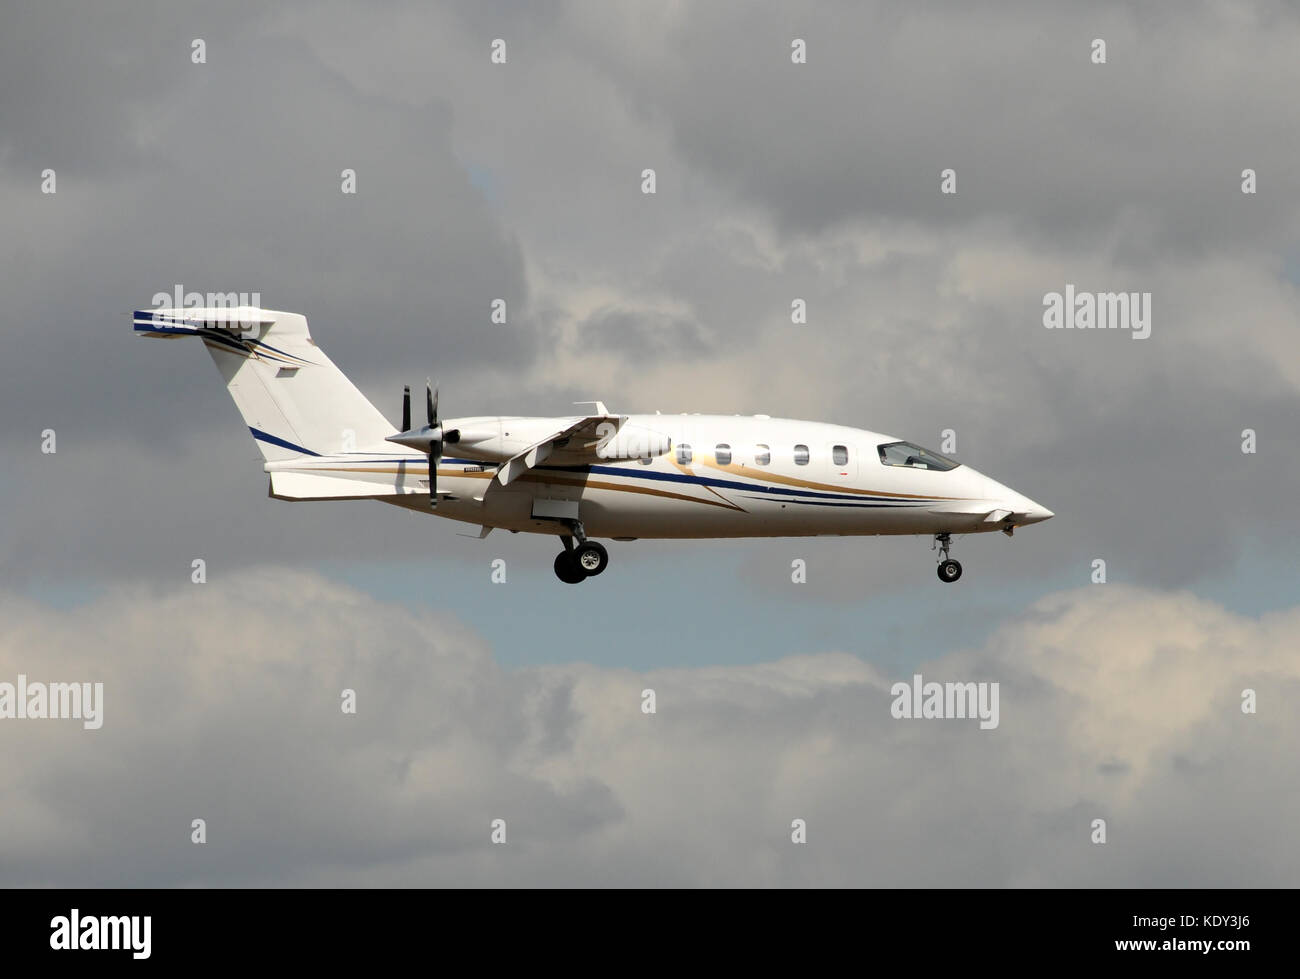 Modern turboprop airplane with engines facing back - Stock Image